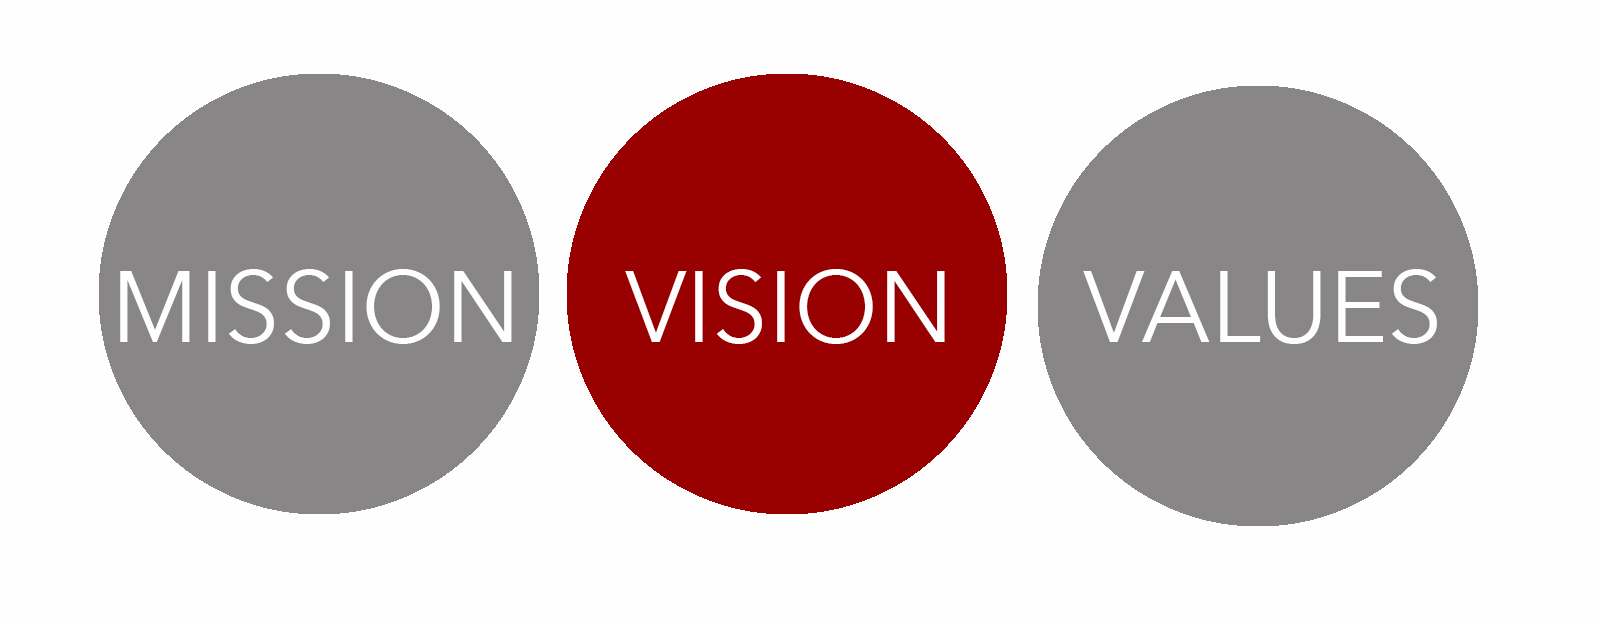 mission and vision ndha